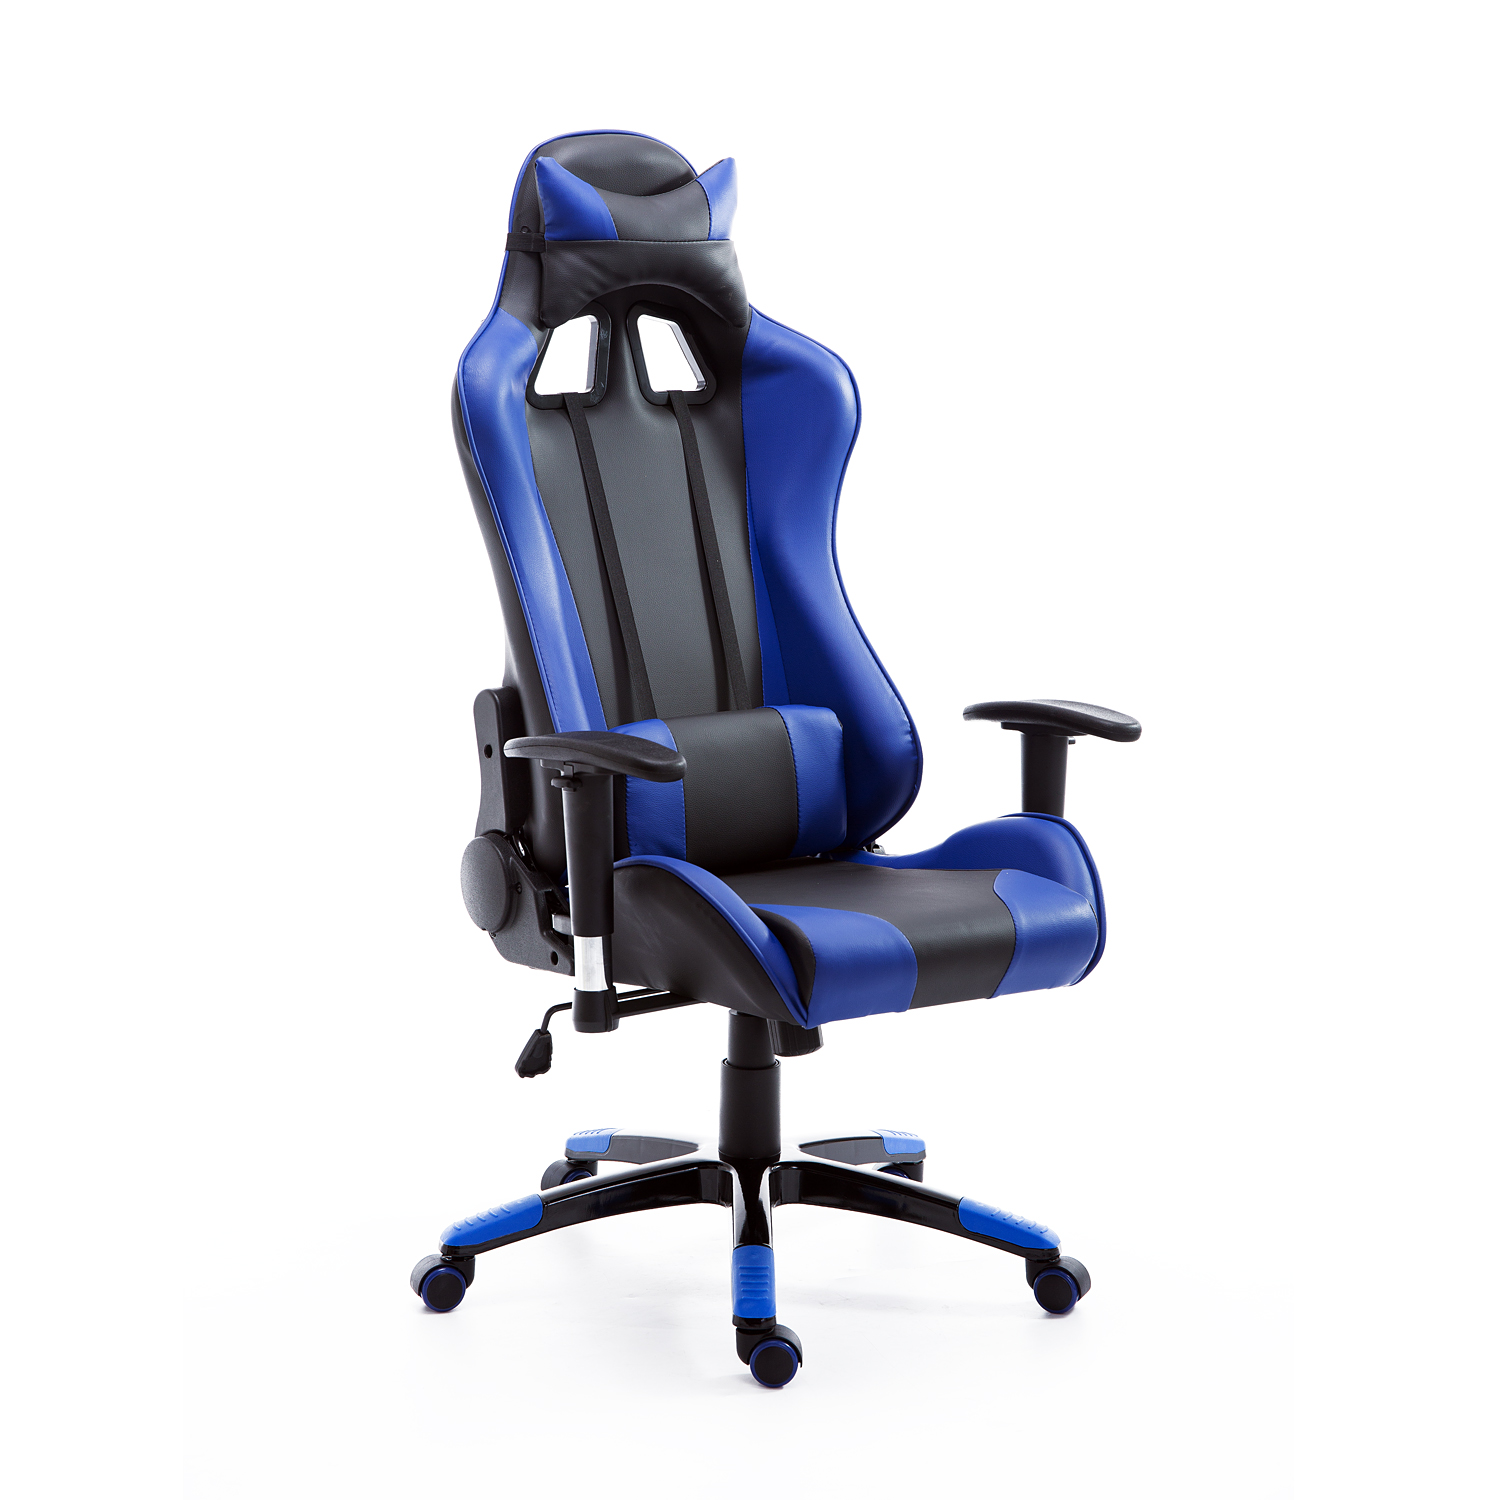 Office Chairs Walmart >> HomCom Reclining Gaming Racing Office Chair - Blue / Black - Walmart.com